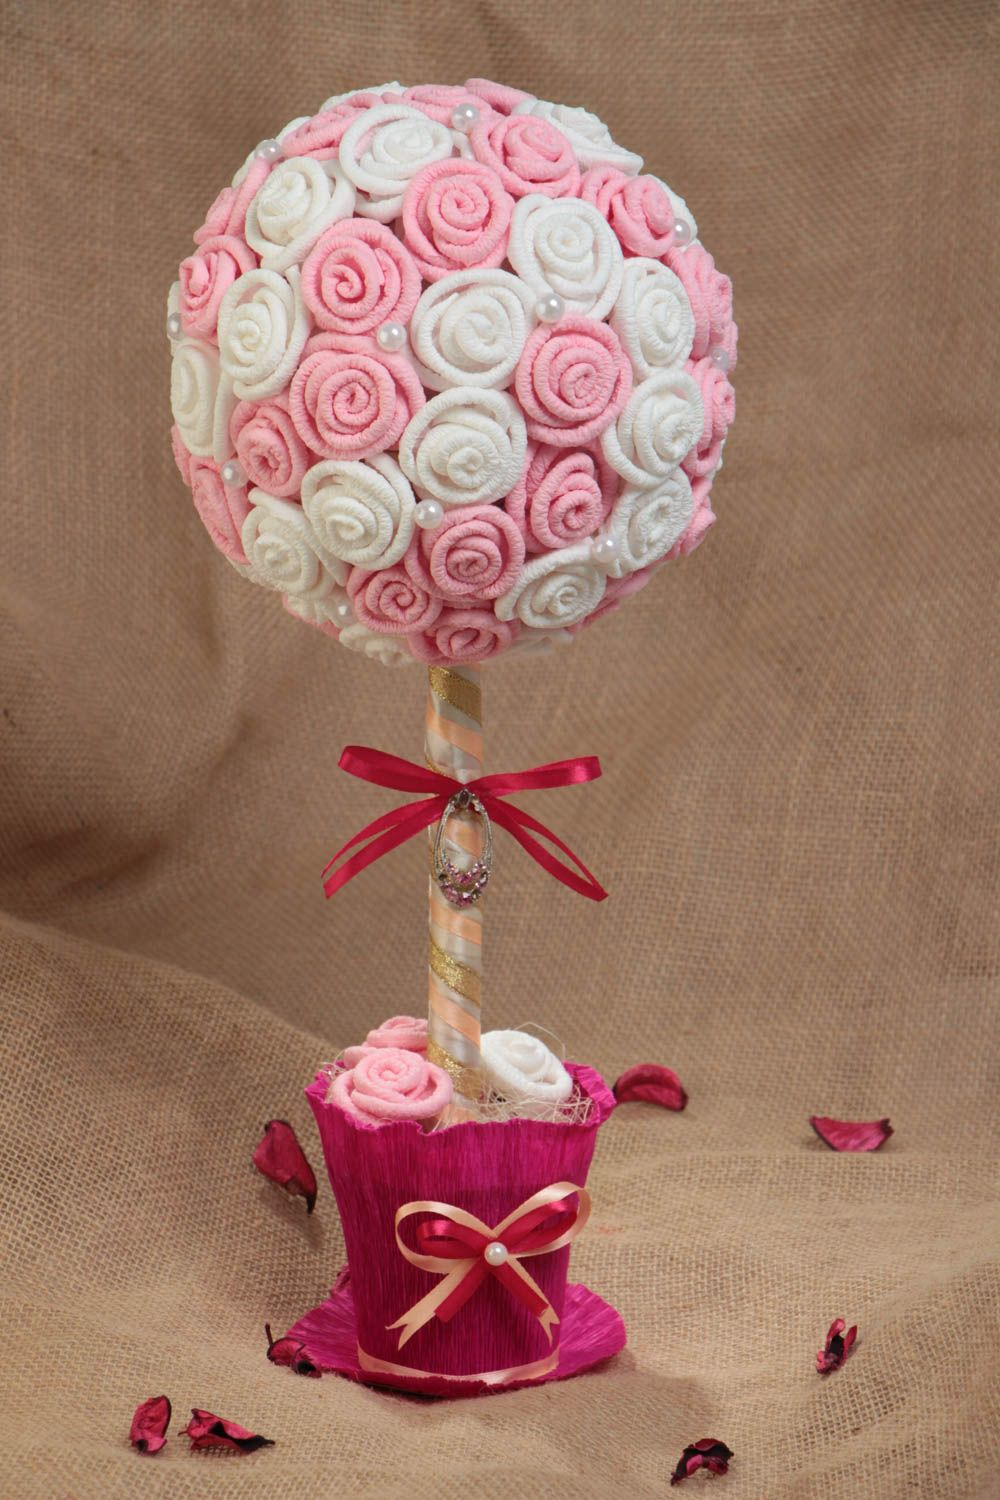 Handmade decorative topiary tree with white and pink paper roses with beads photo 1